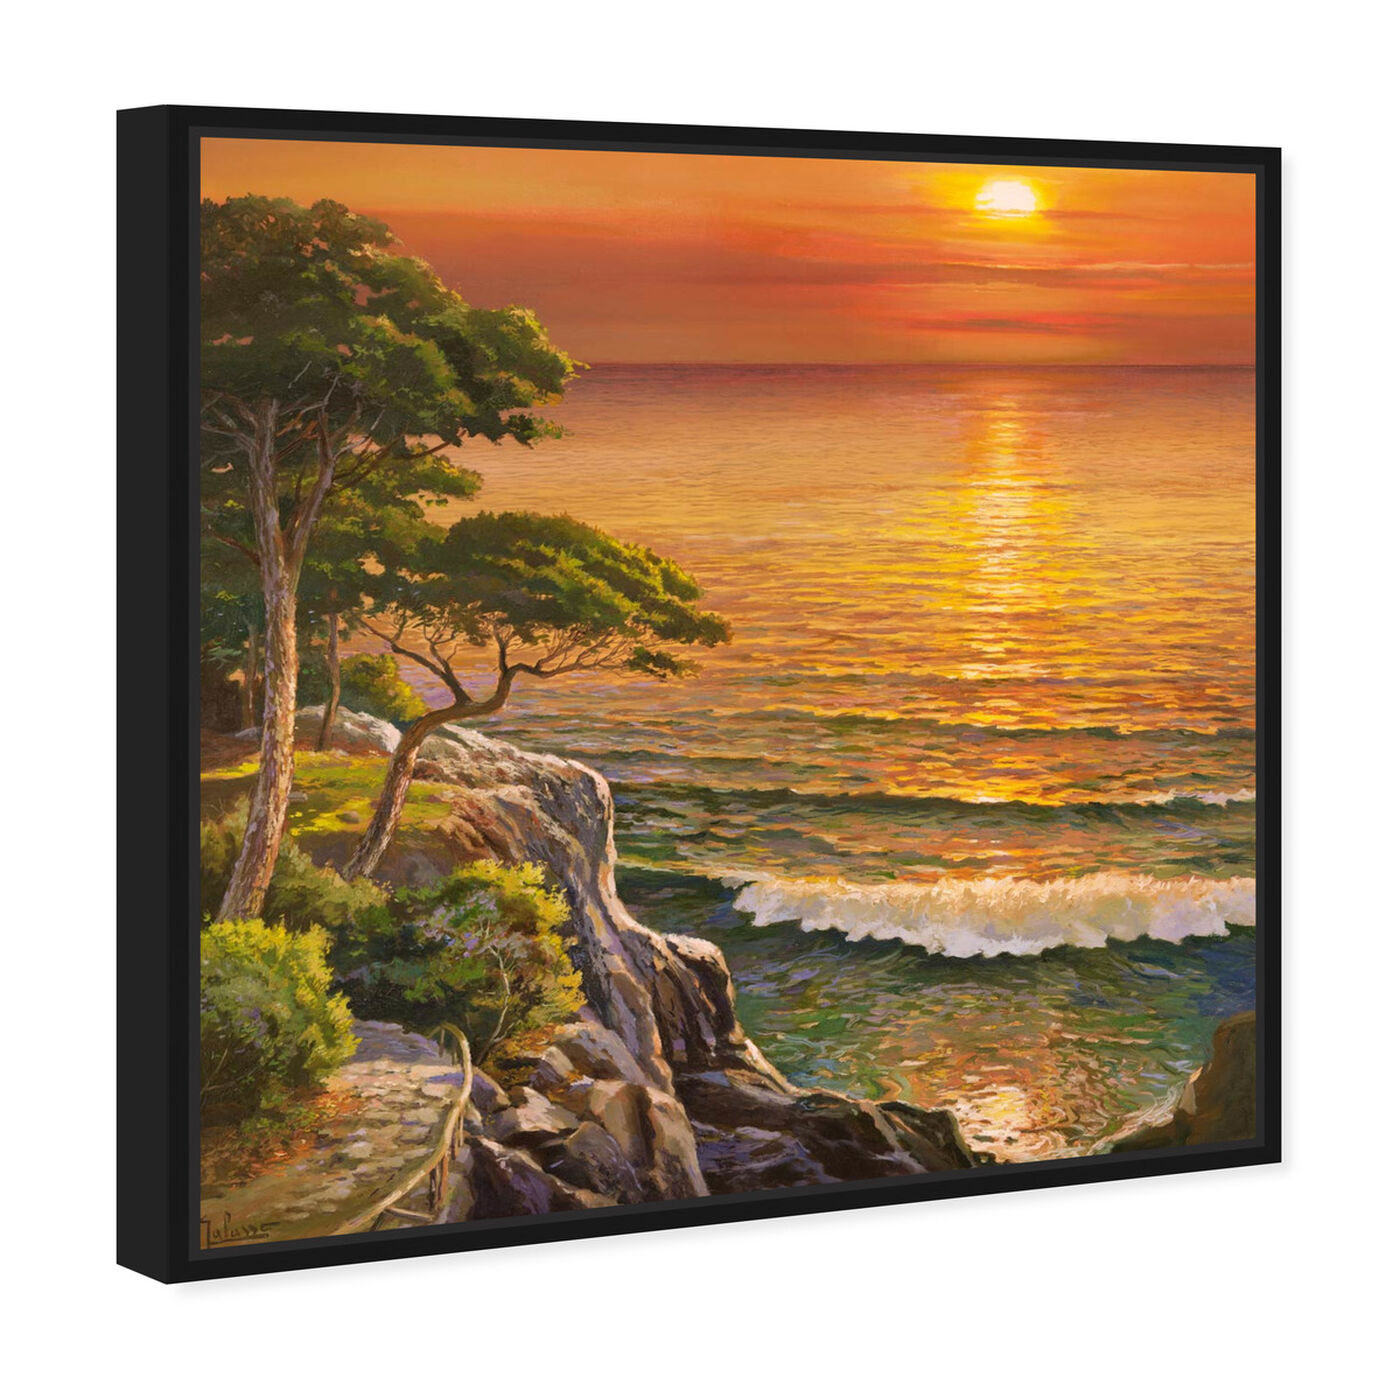 Angled view of Sai - Sunset Visage 1AD2552 featuring nature and landscape and sunrise and sunsets art.